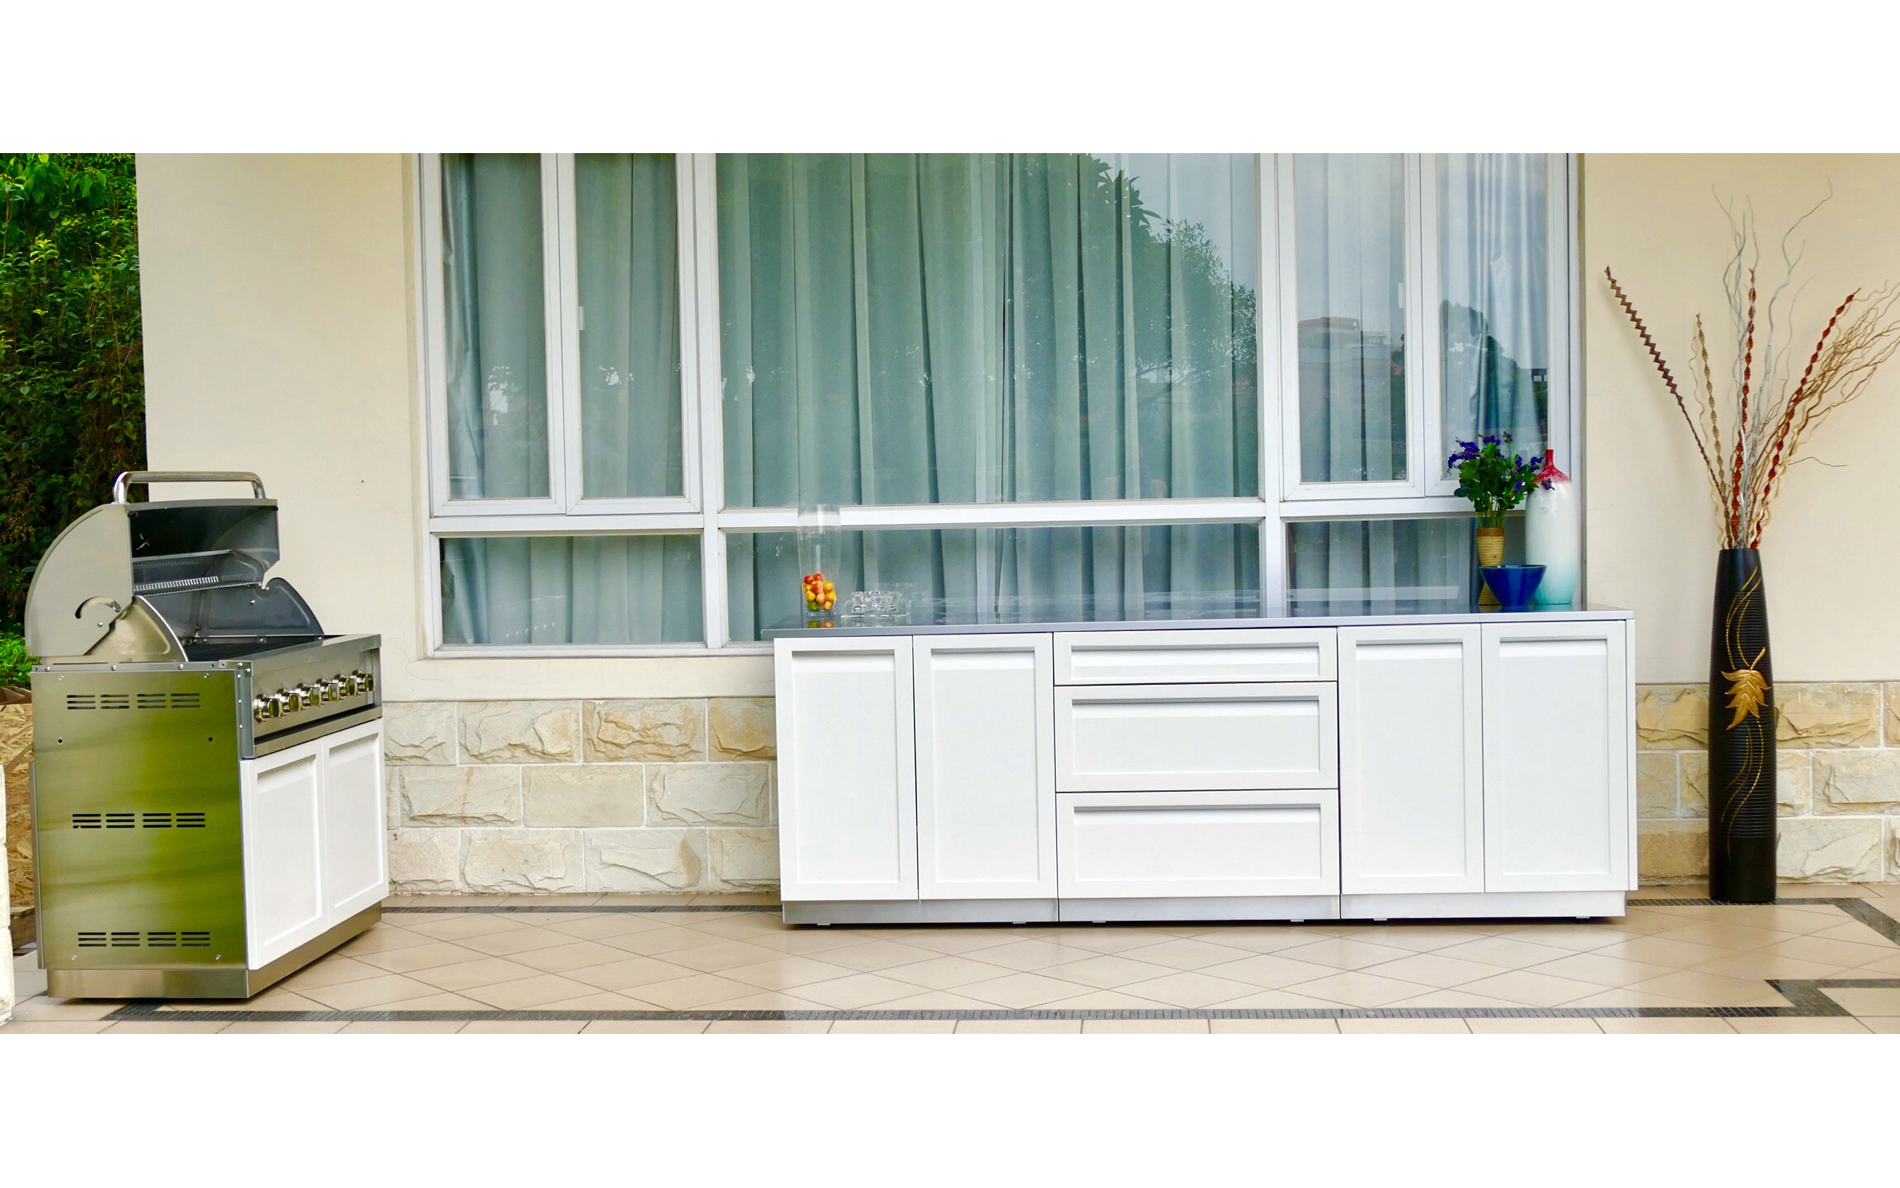 Stainless Steel Cabinets For Outdoor Kitchens. Trendy Newage ...